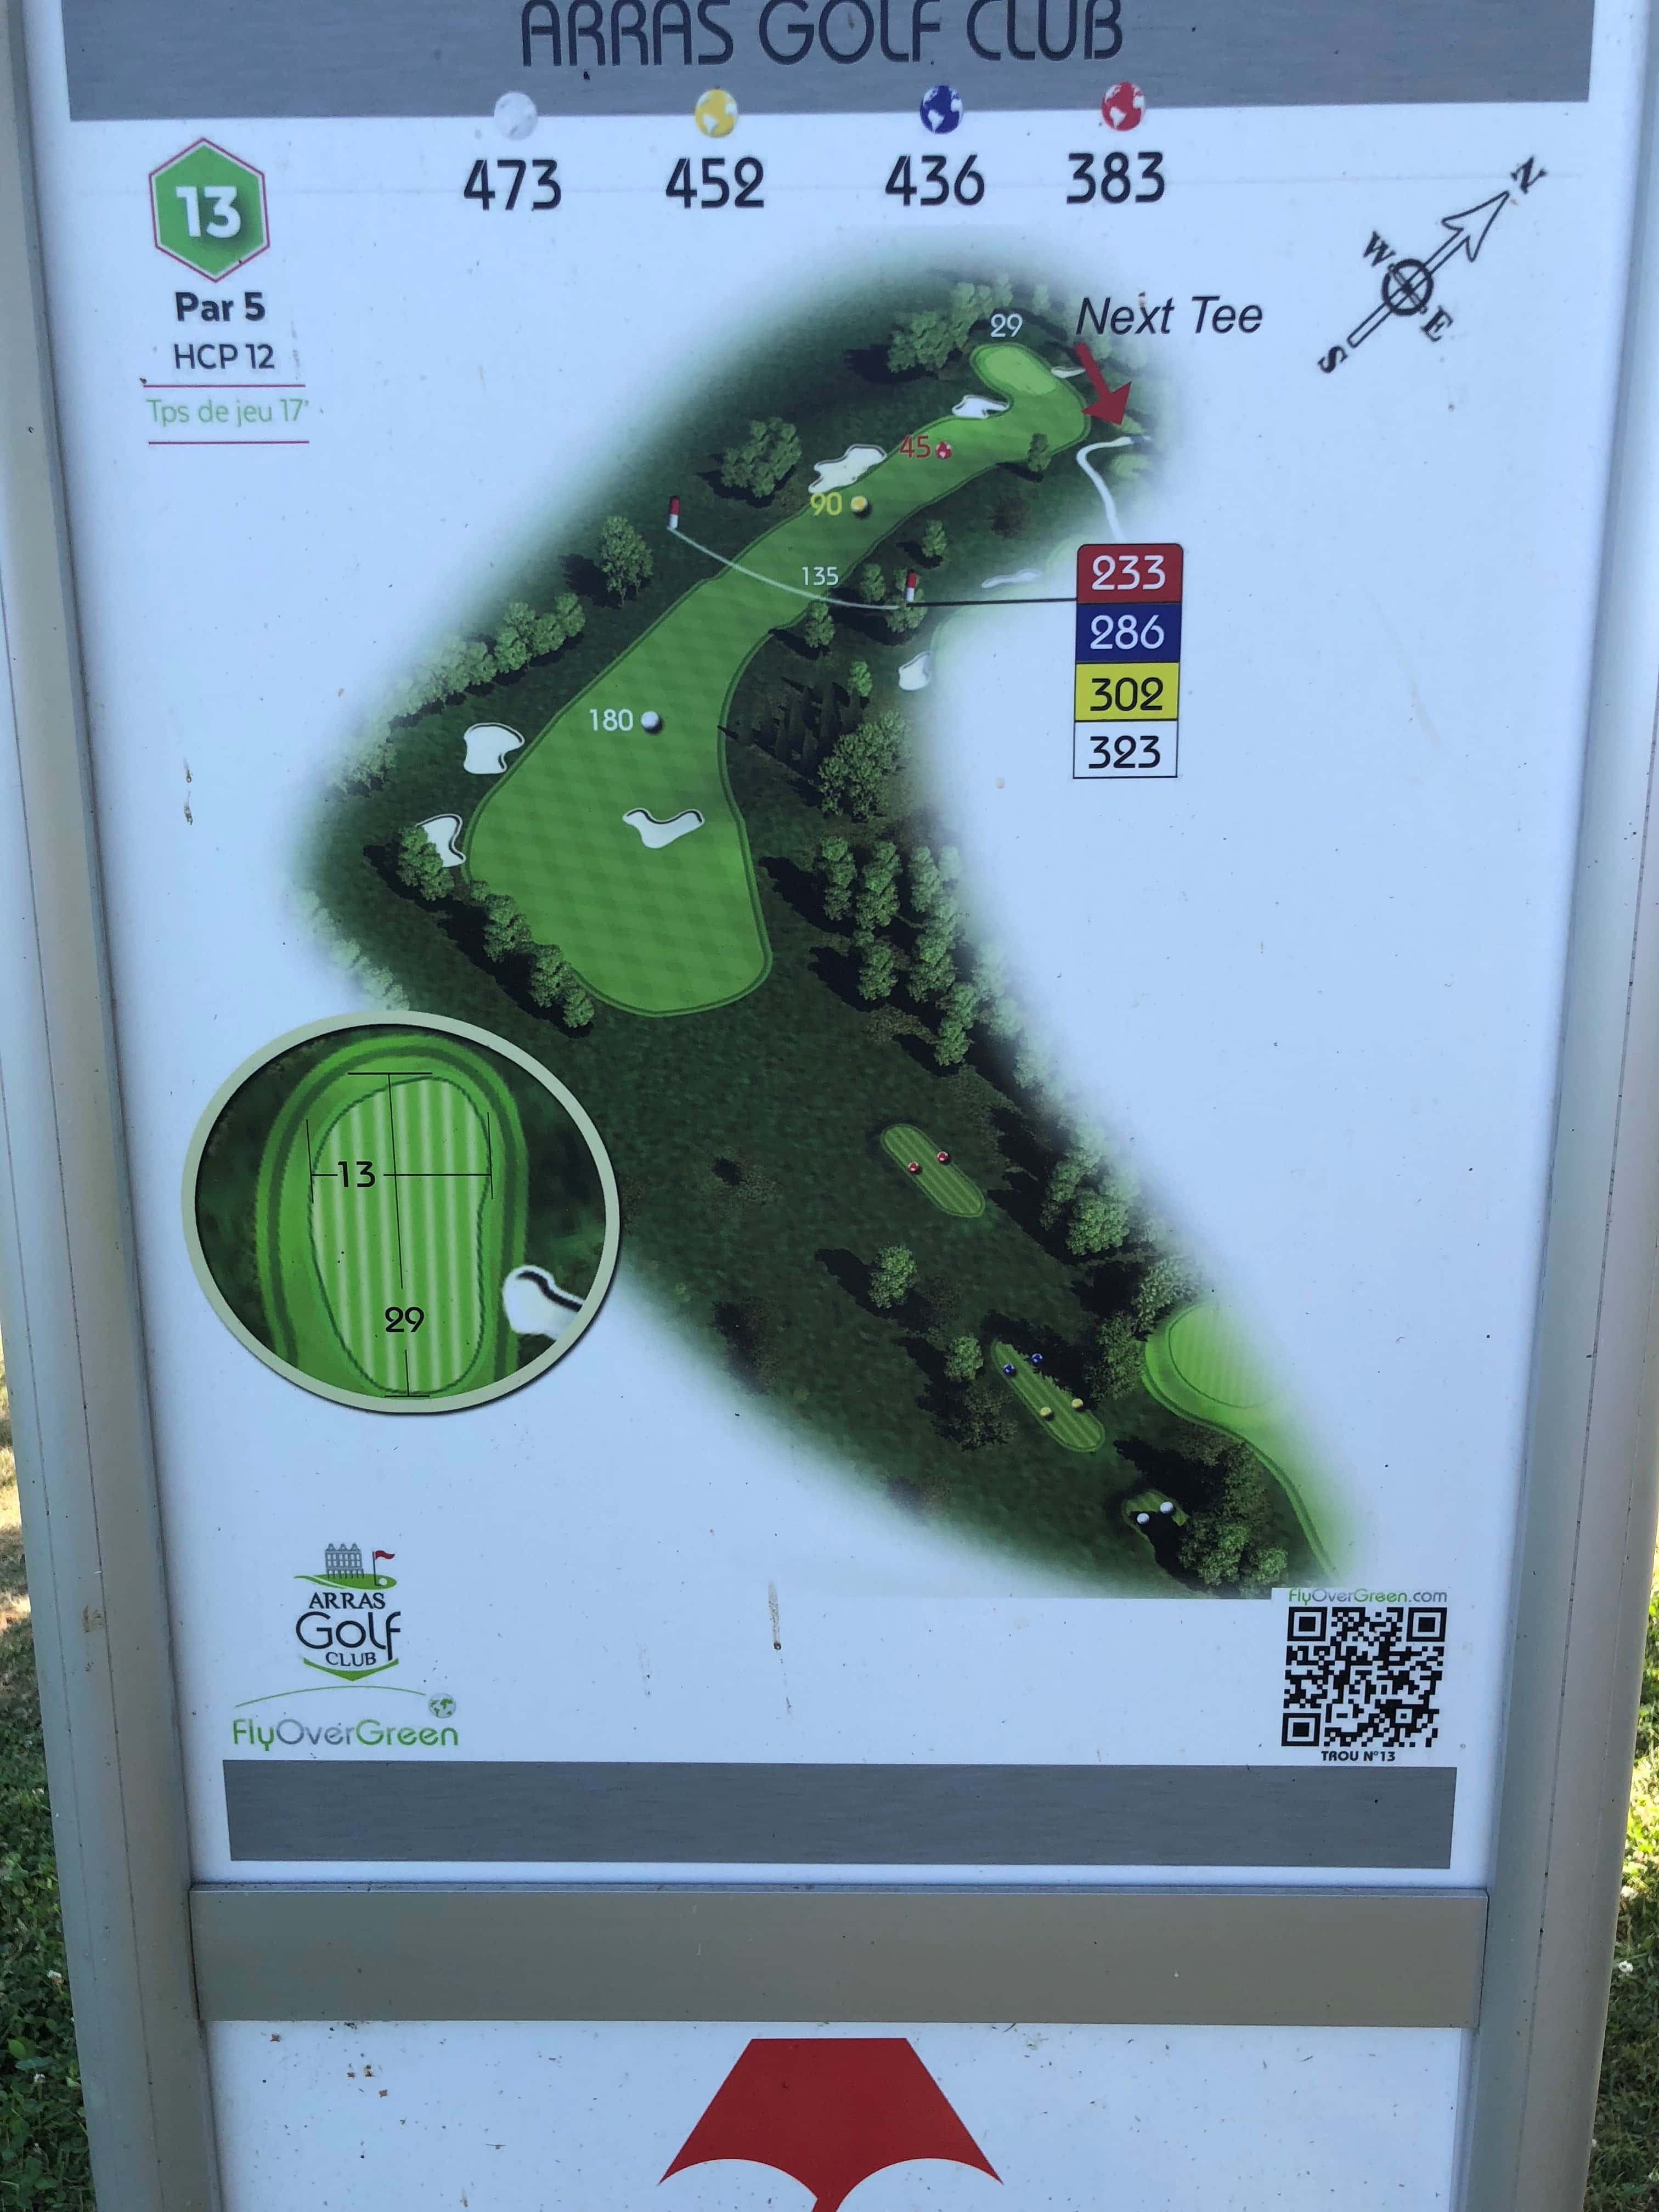 Tee 13, Arras Golf Club, Arras Golf Resort, Parcours La Vallée, Distance 473m, Distance 452m, Distance 436m, Distance 383m, Par 5